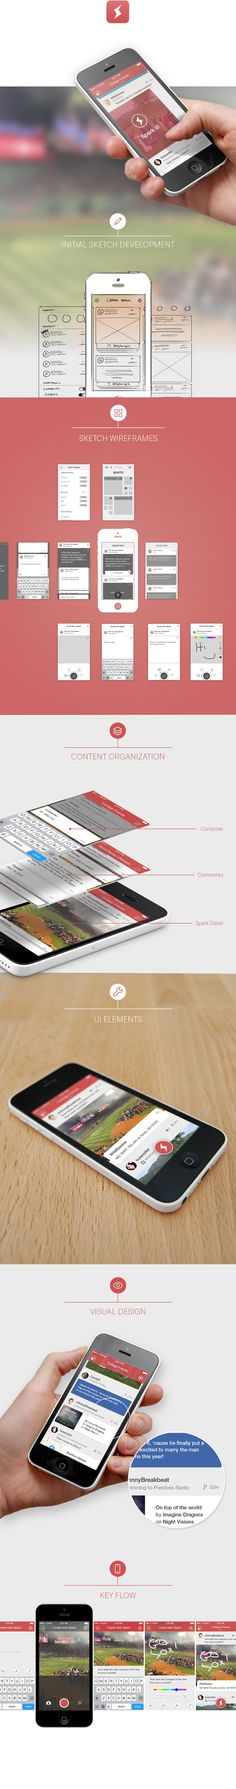 Syft Mobile App Redesign on Behance